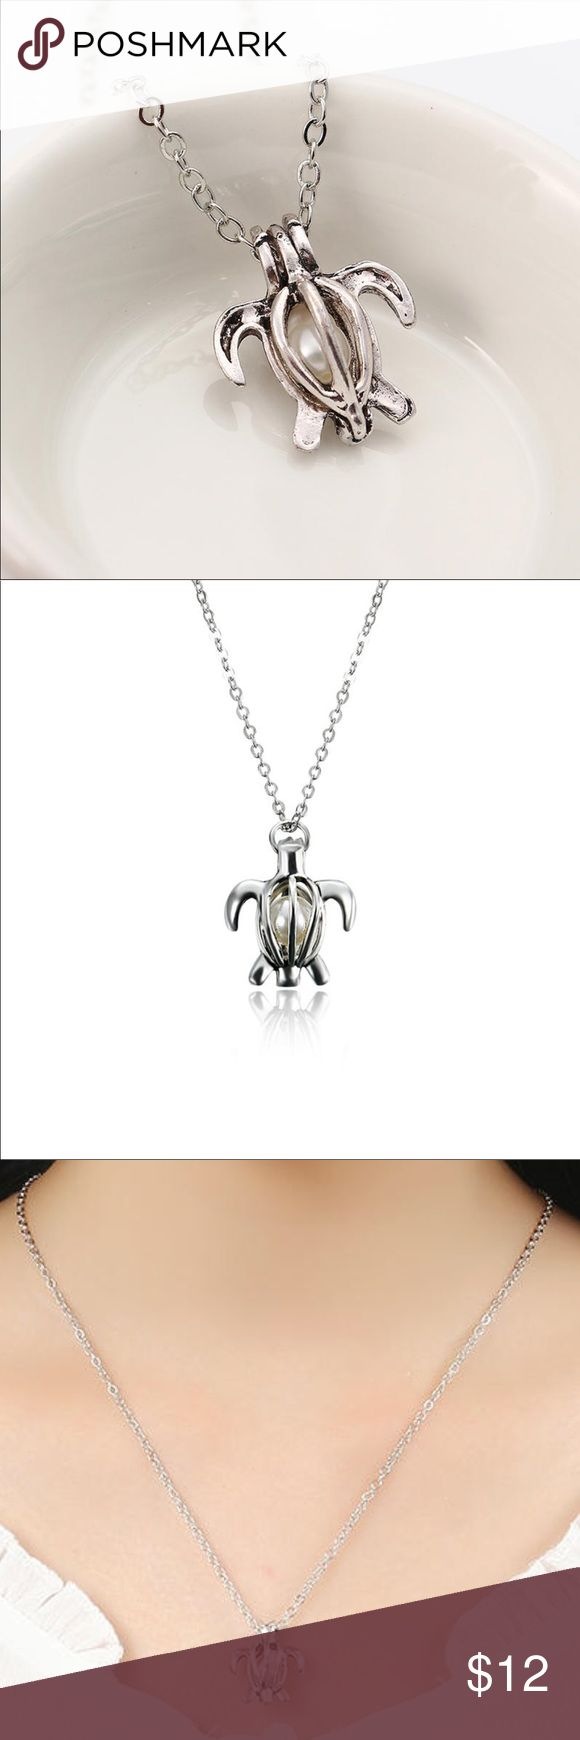 Retro Pearl Openable Turtle Pendant Chain Necklace Package Includes: 1 x Necklace  Style: Vintage Type: Necklace Material: Zinc Alloy, Artificial Pearl Color: Silver Chain Length: About 16 inches  New without tag! Jewelry Necklaces